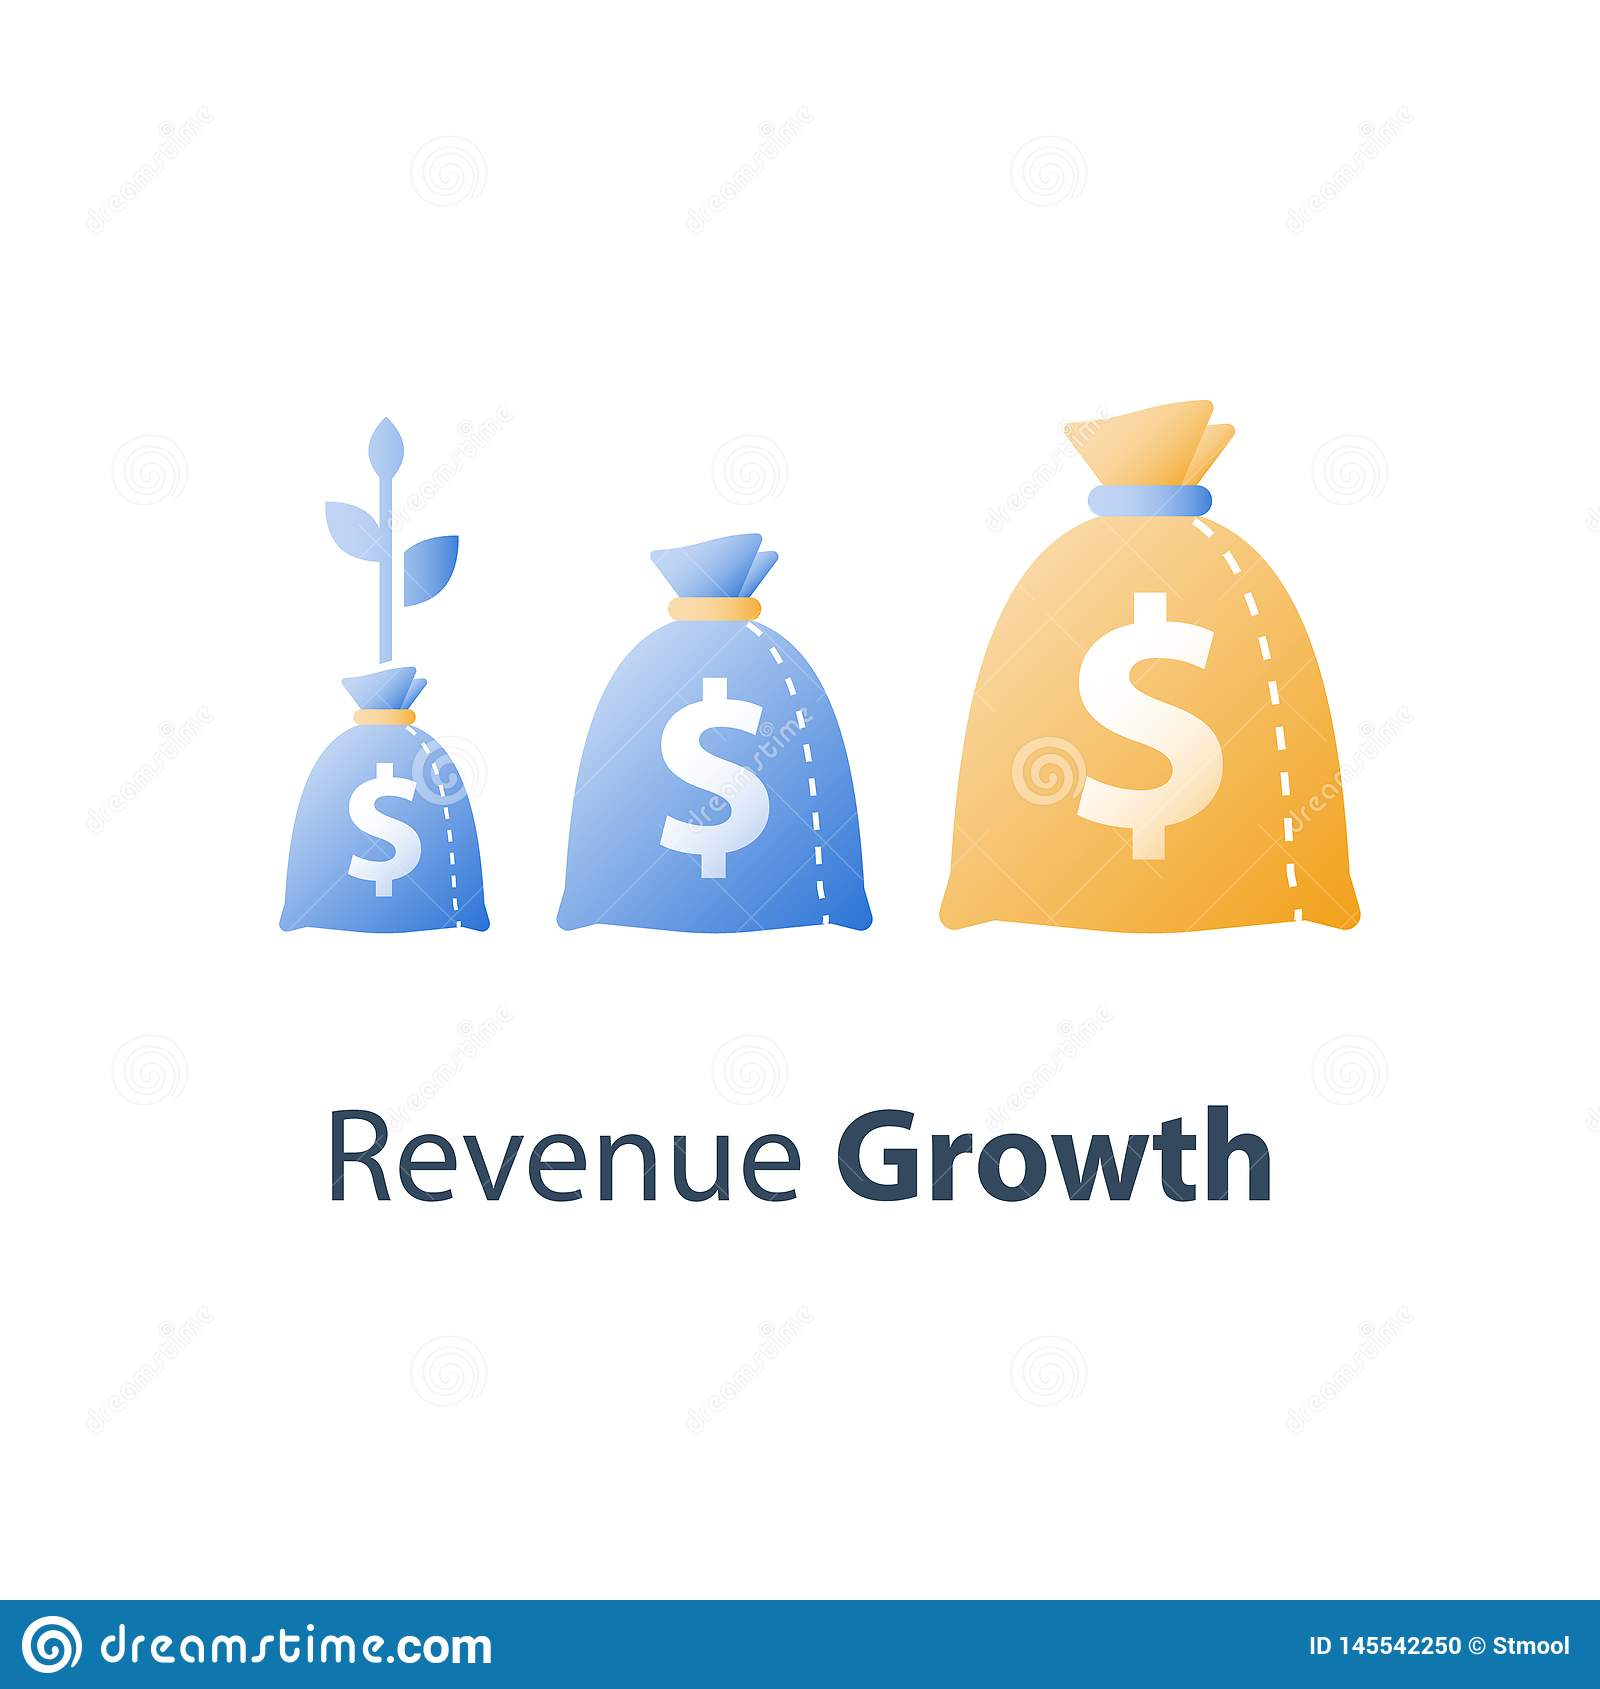 Financial Value Steady Growth, Long Term Investment Strategy, Asset